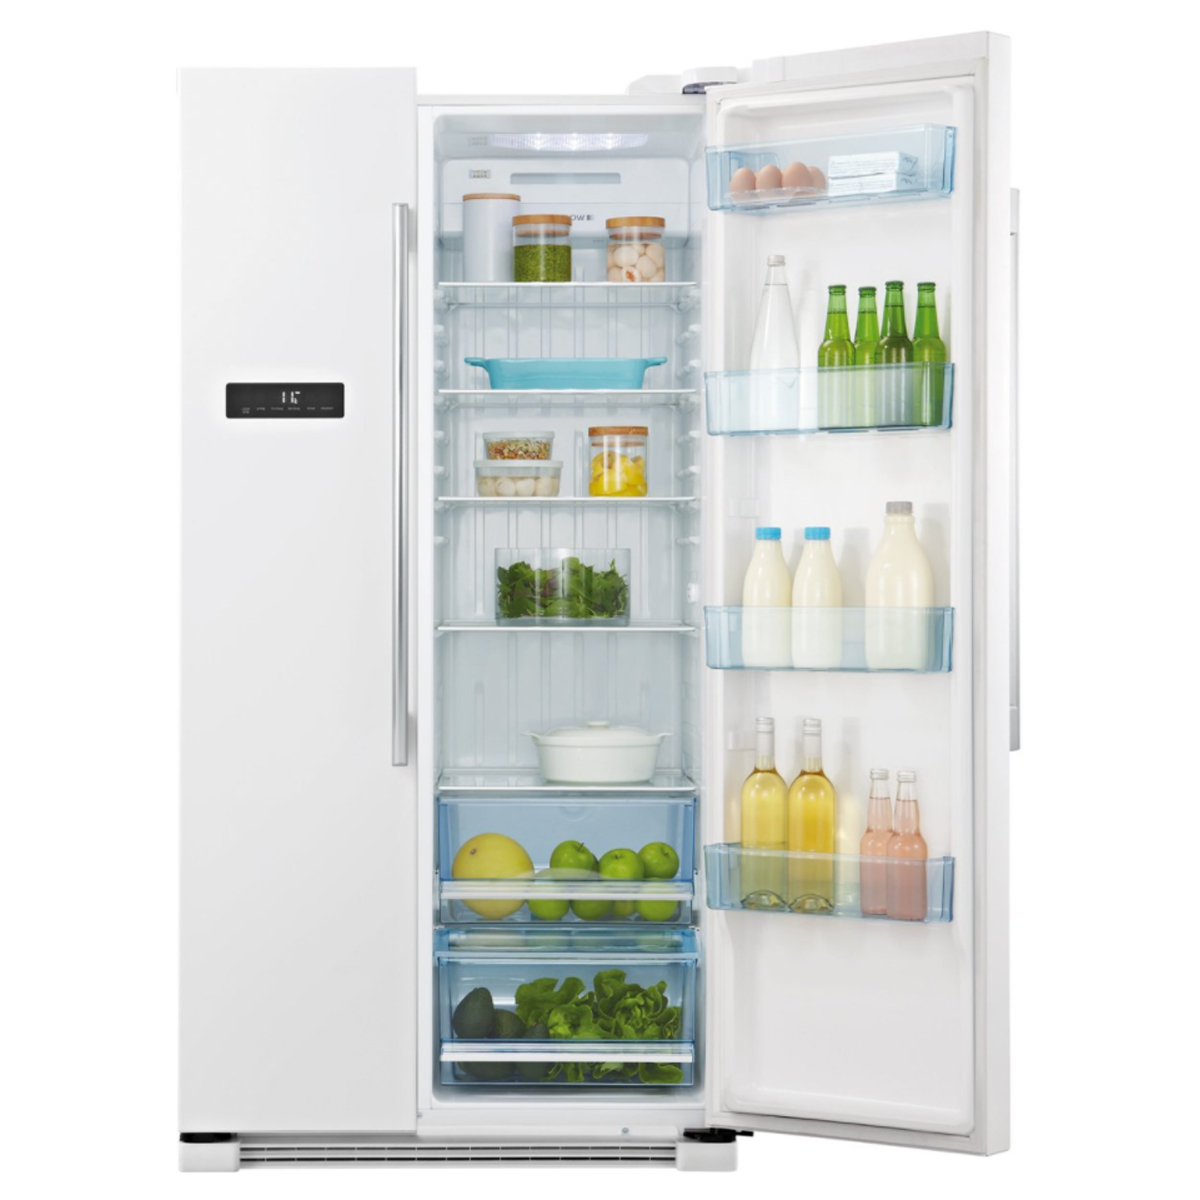 Haier HSBS628AW 629L Side By Side Refrigerator 124150